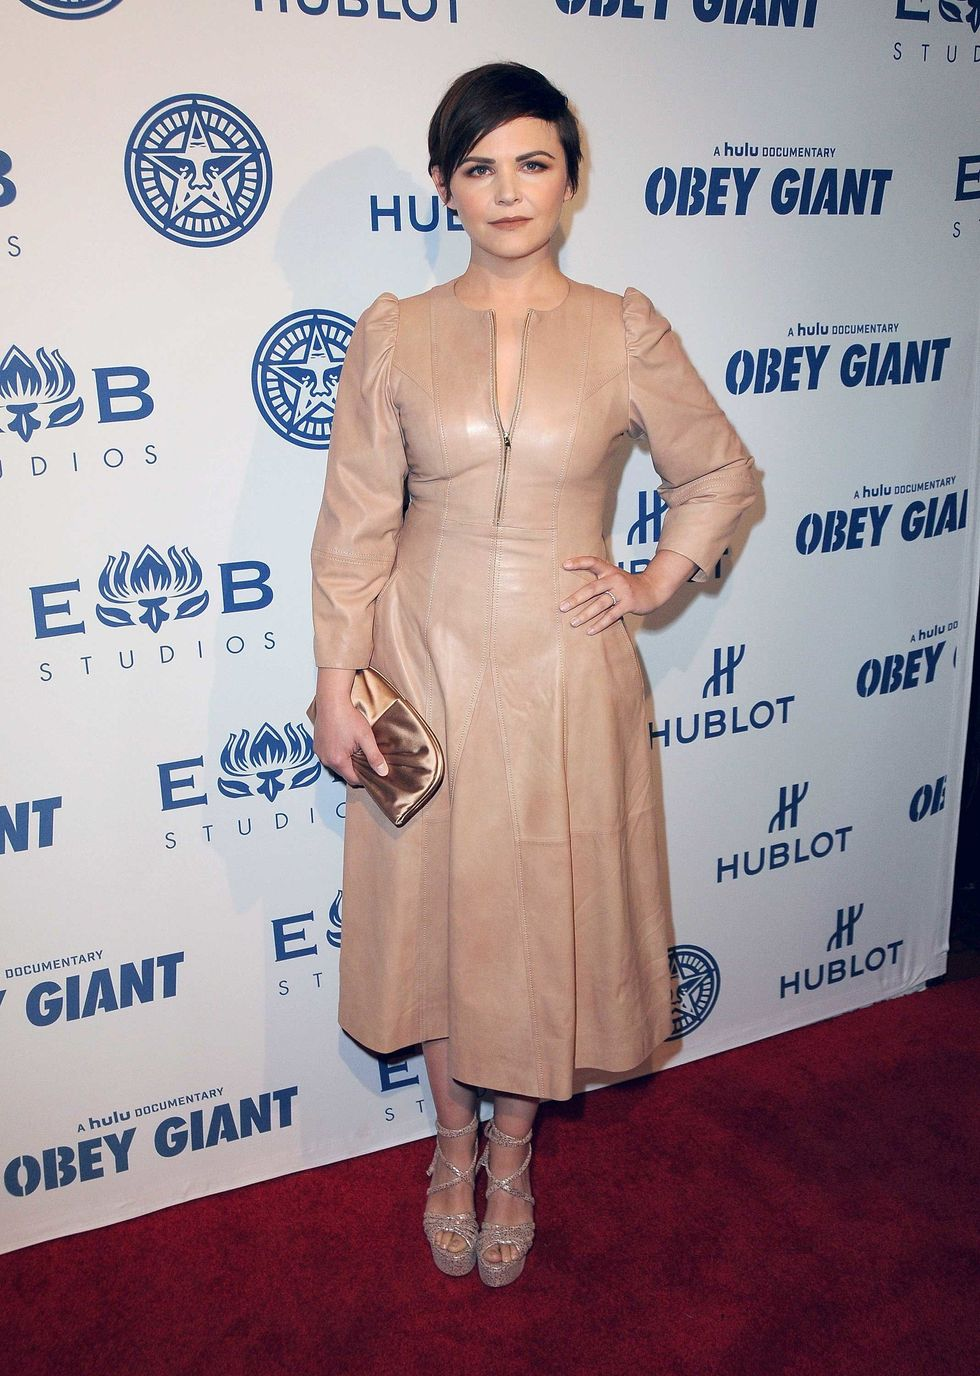 Ginnifer Goodwin in a beige/nude leather dress.